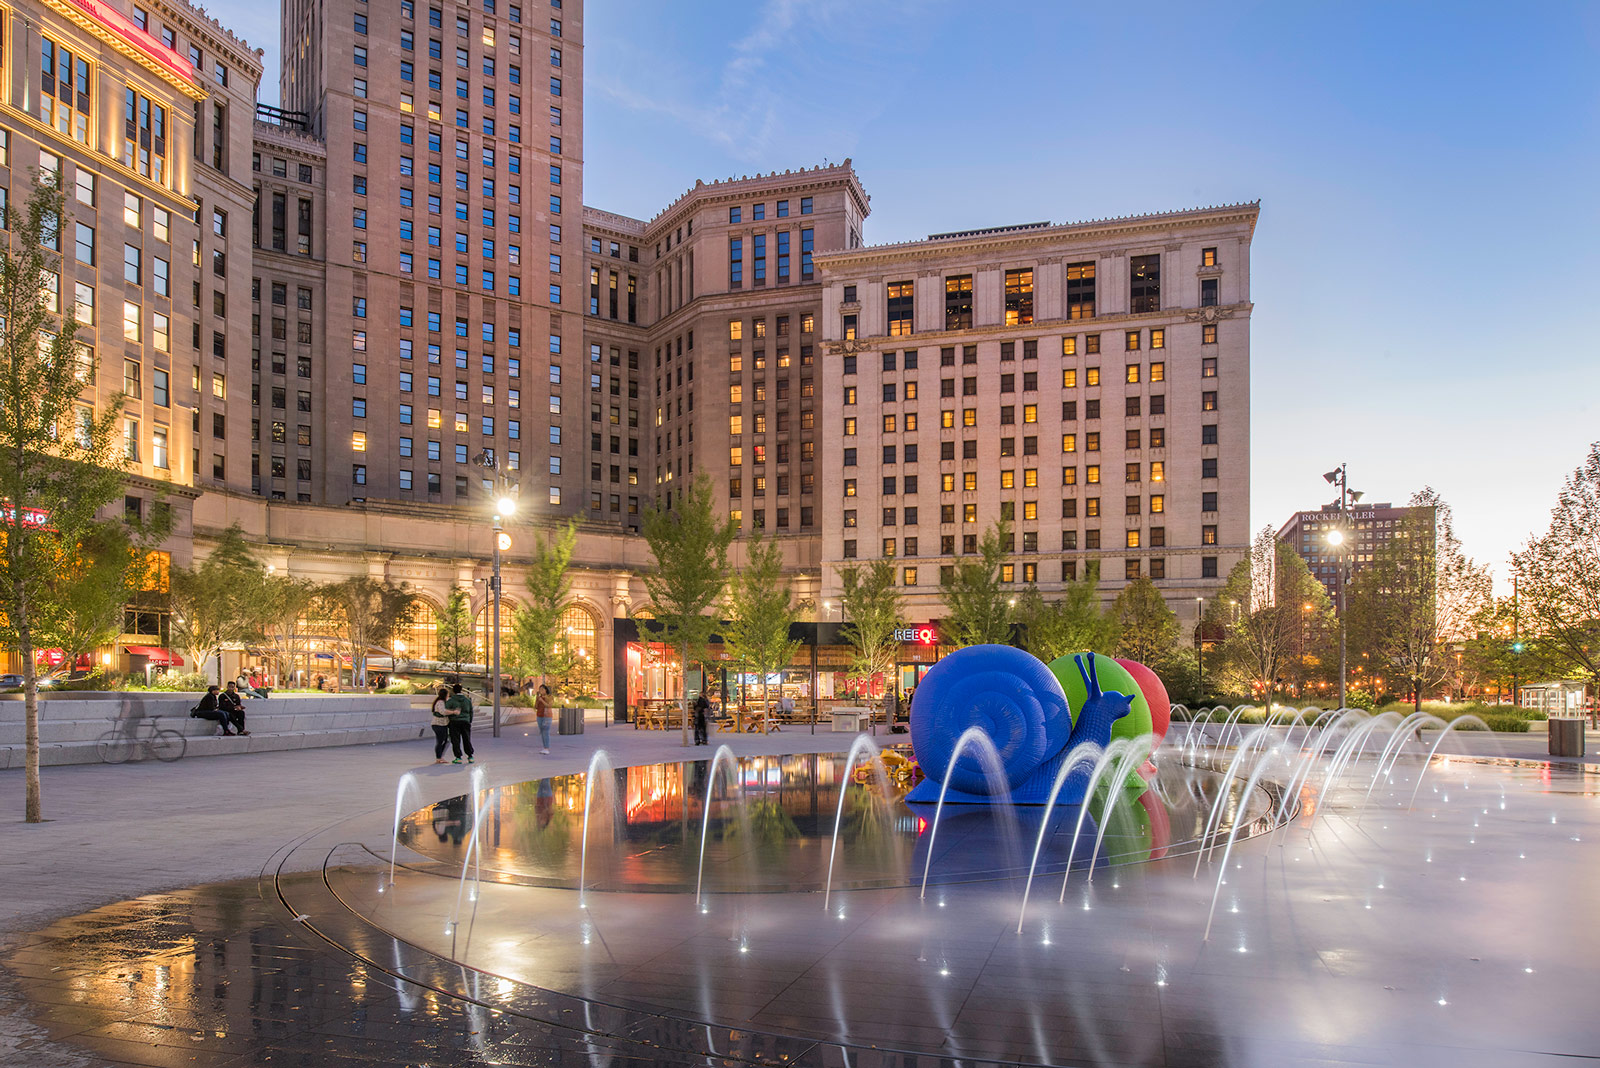 Architects Cleveland Ohio James Corner And Narchitects Team Up For Public Square